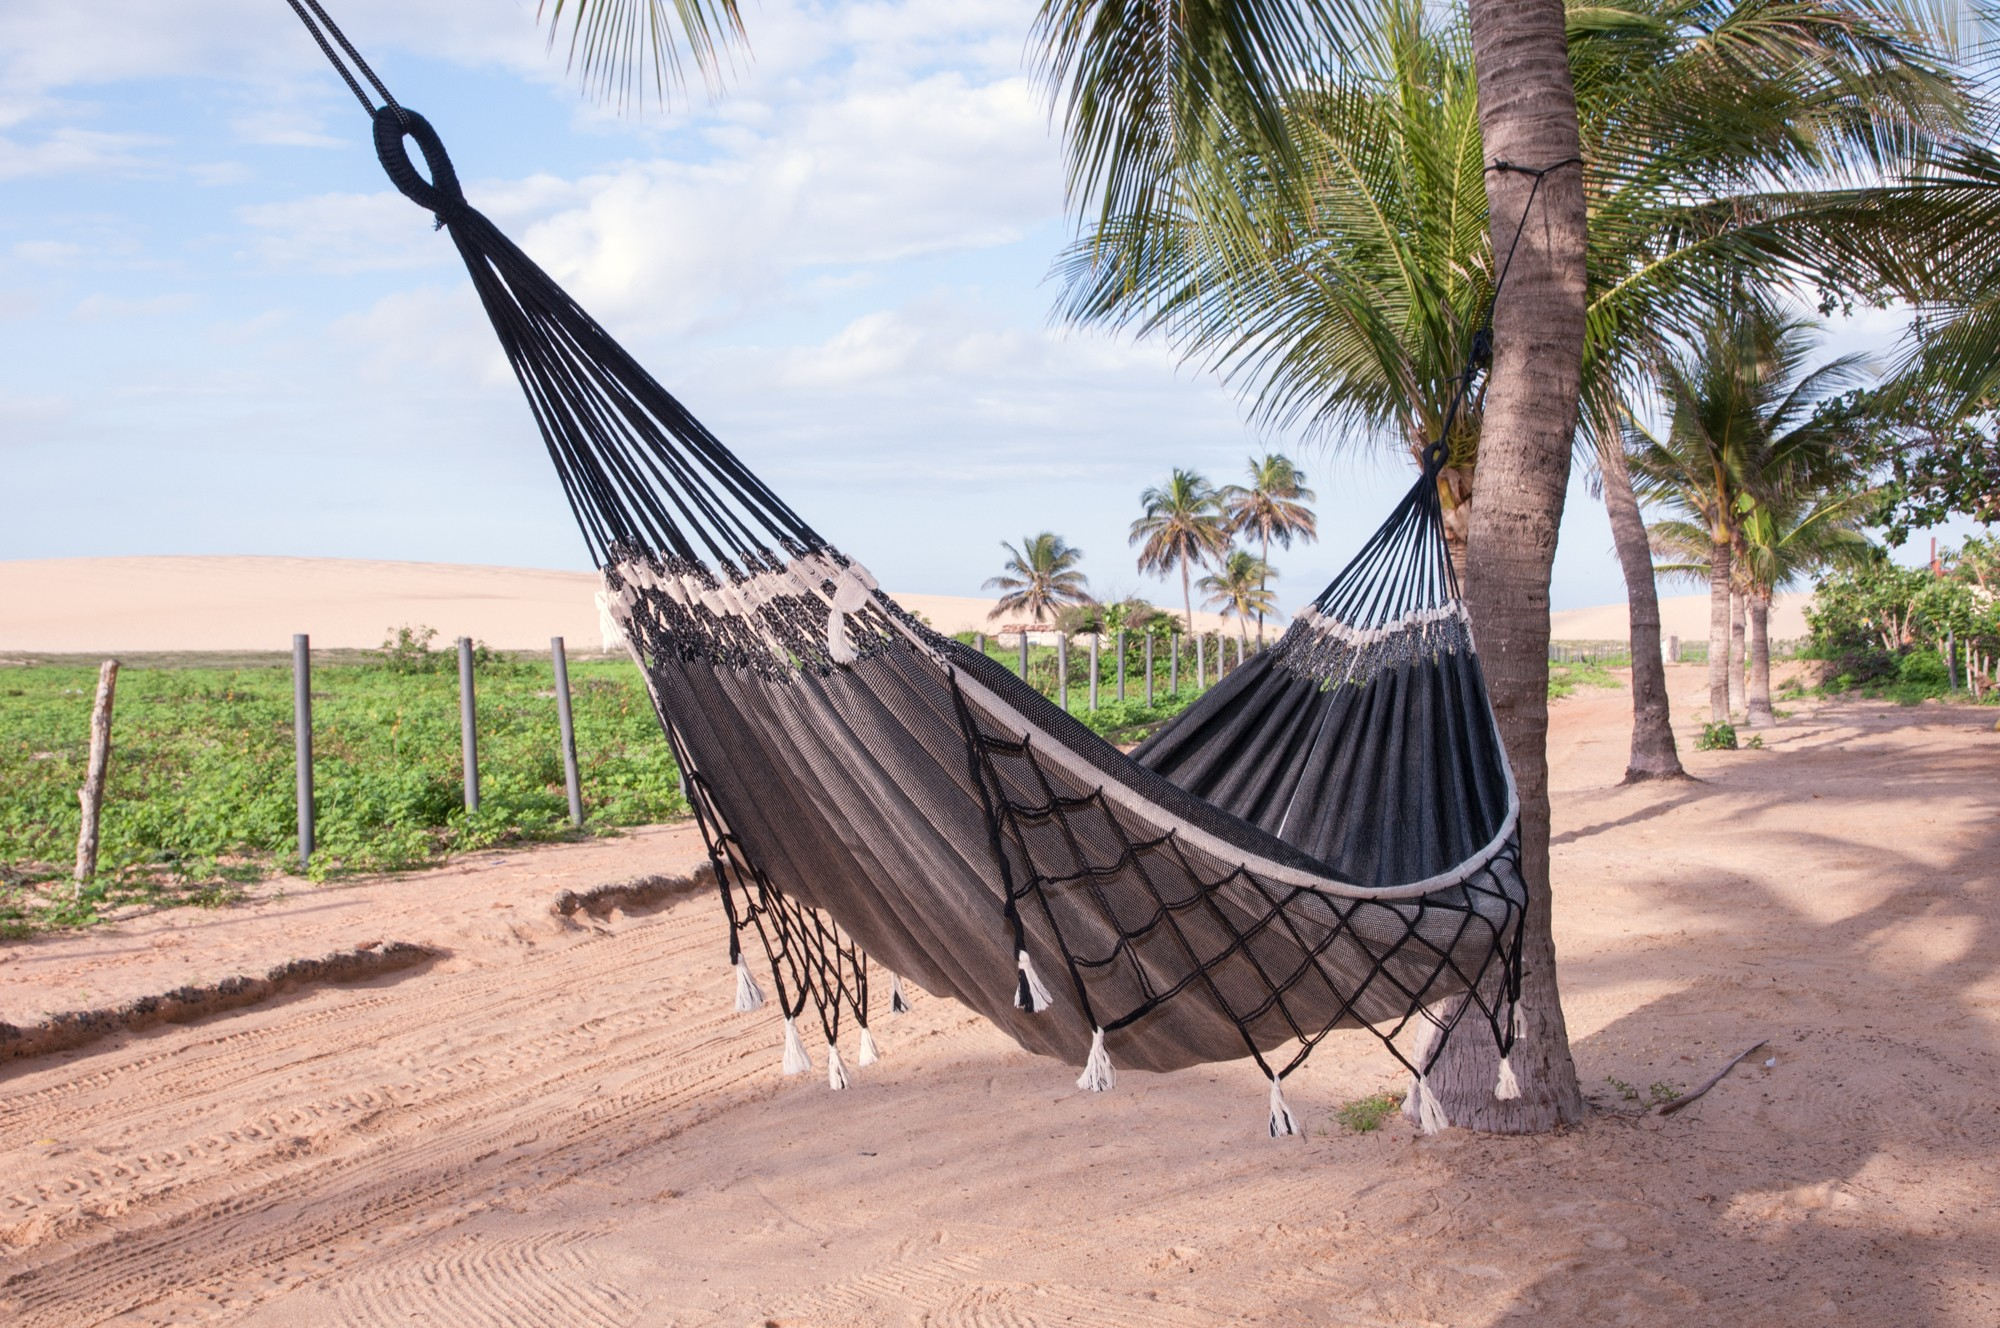 in america northern vela img challenges living most around colombian found emily point the cabo coast desert de hammock guajira when caribbean myself of la backpacking deep firefly south i was